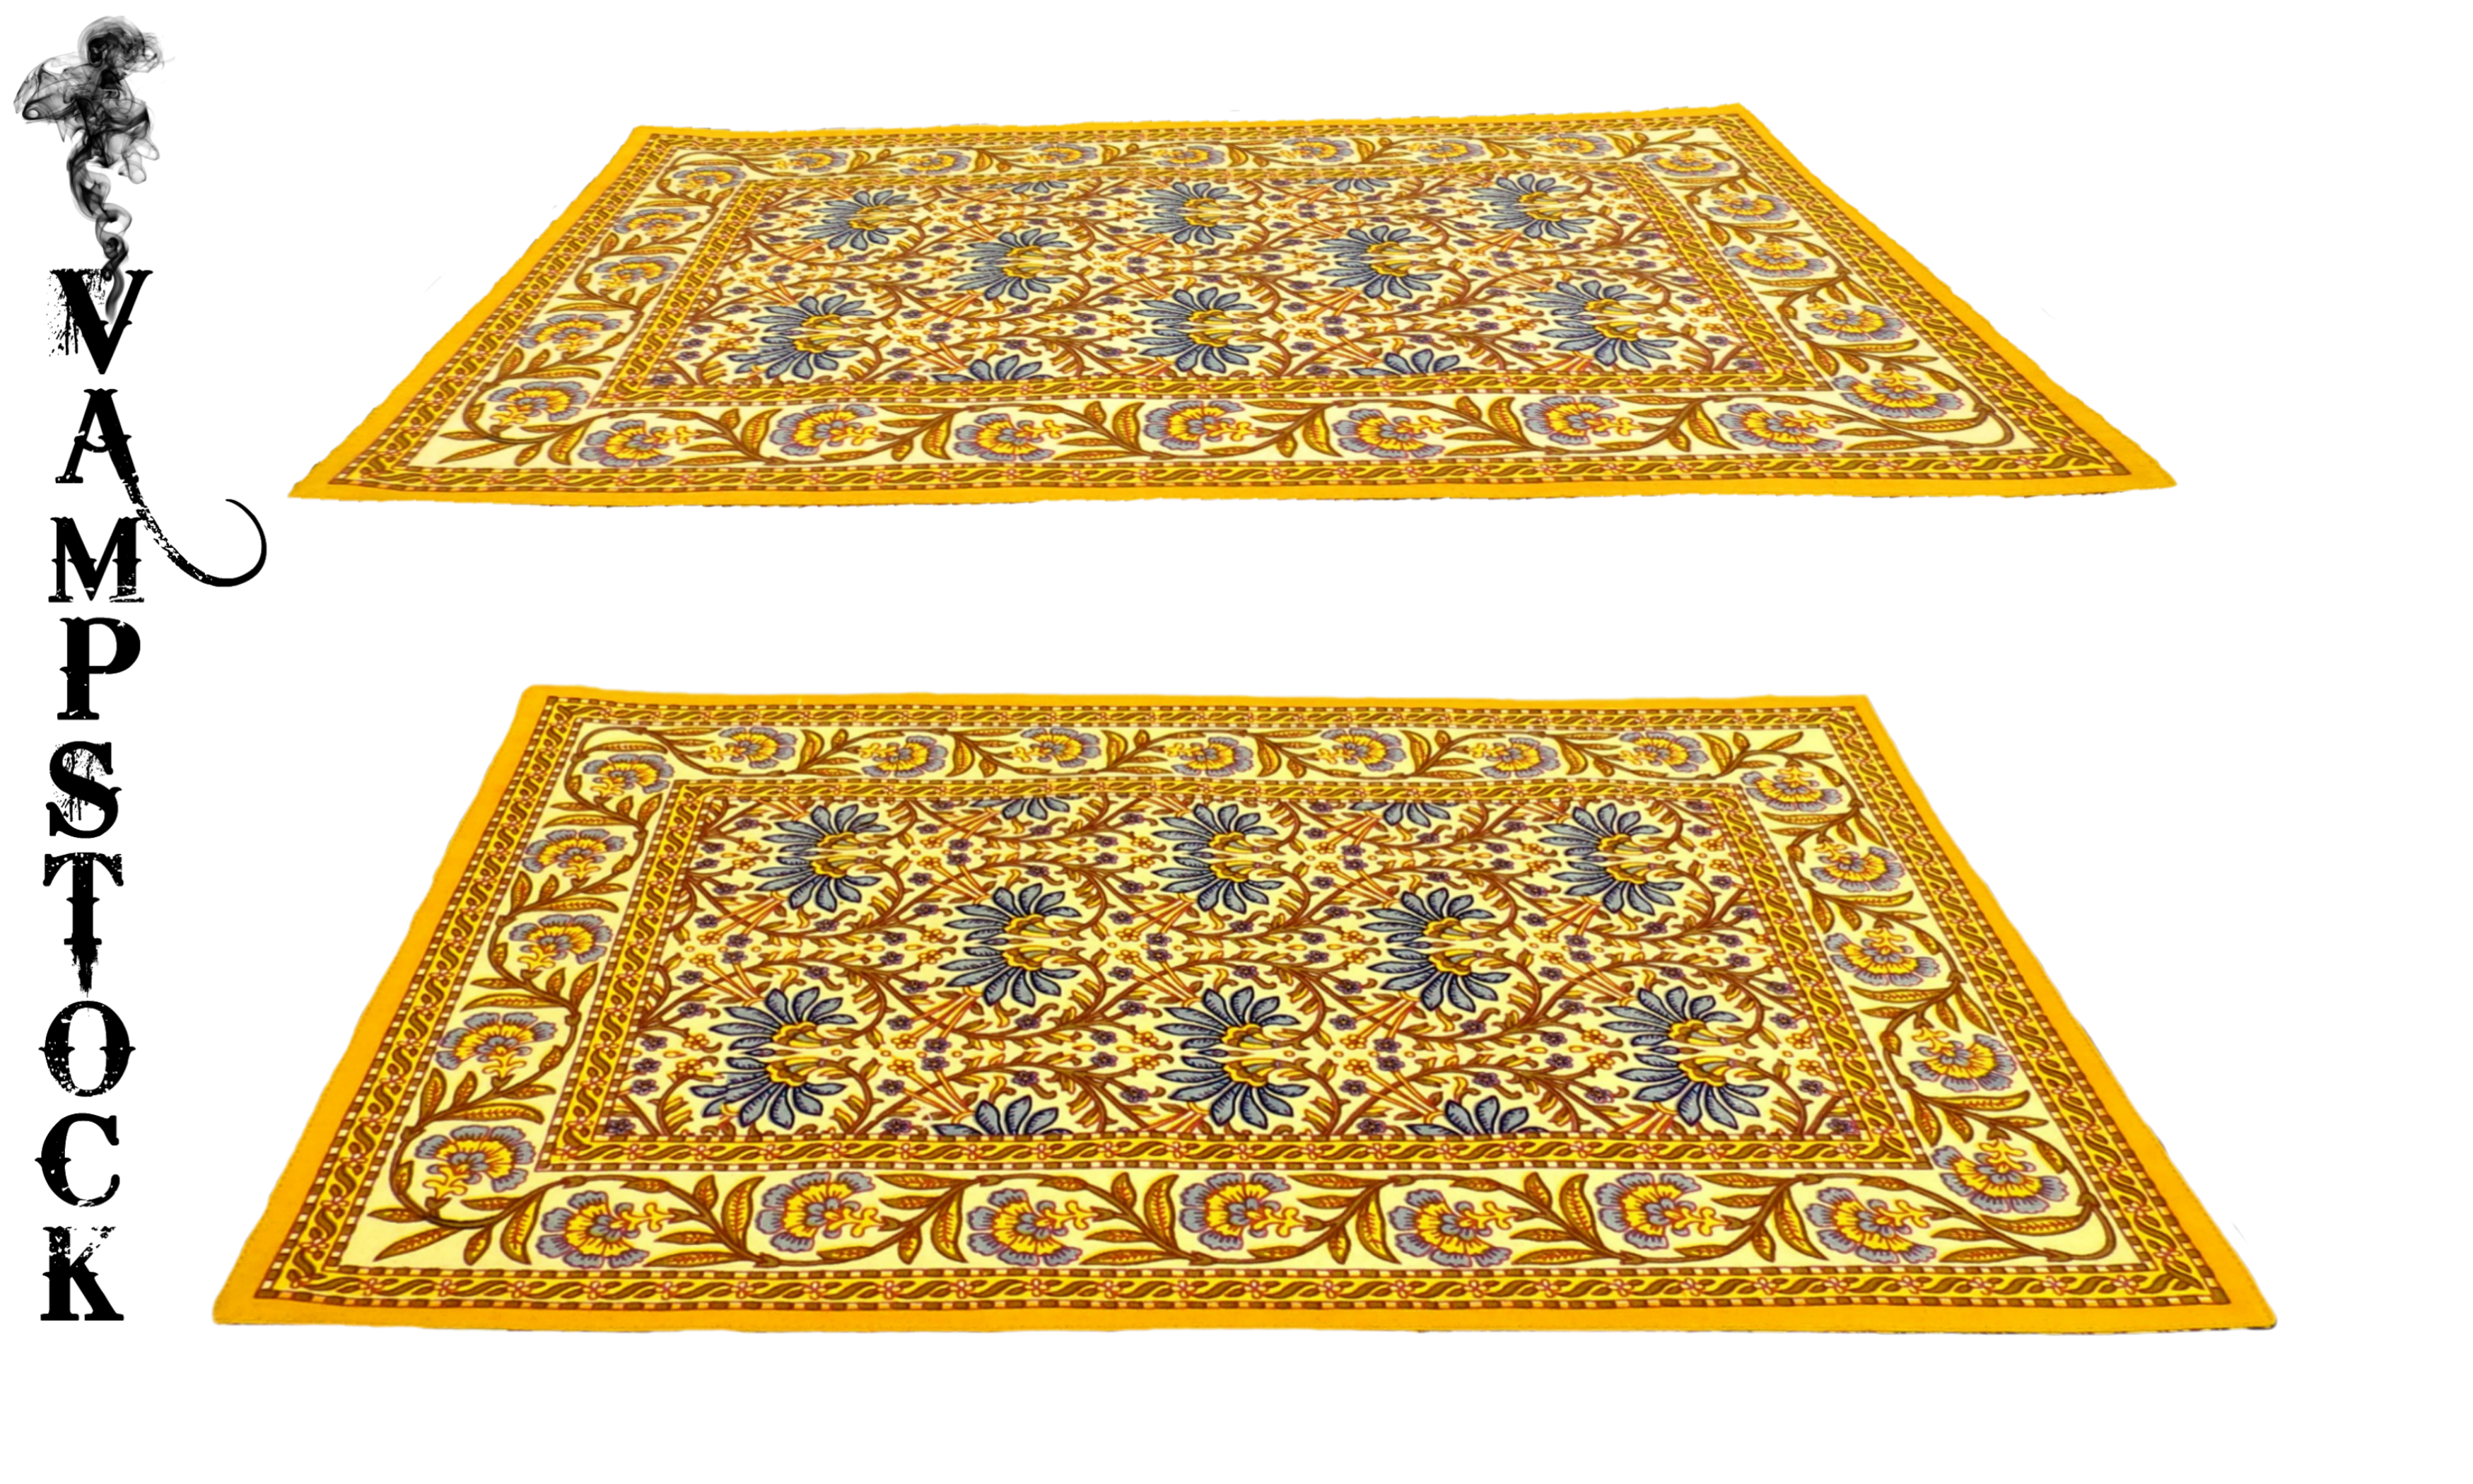 Mat clipart area rug, Mat area rug Transparent FREE for download on.